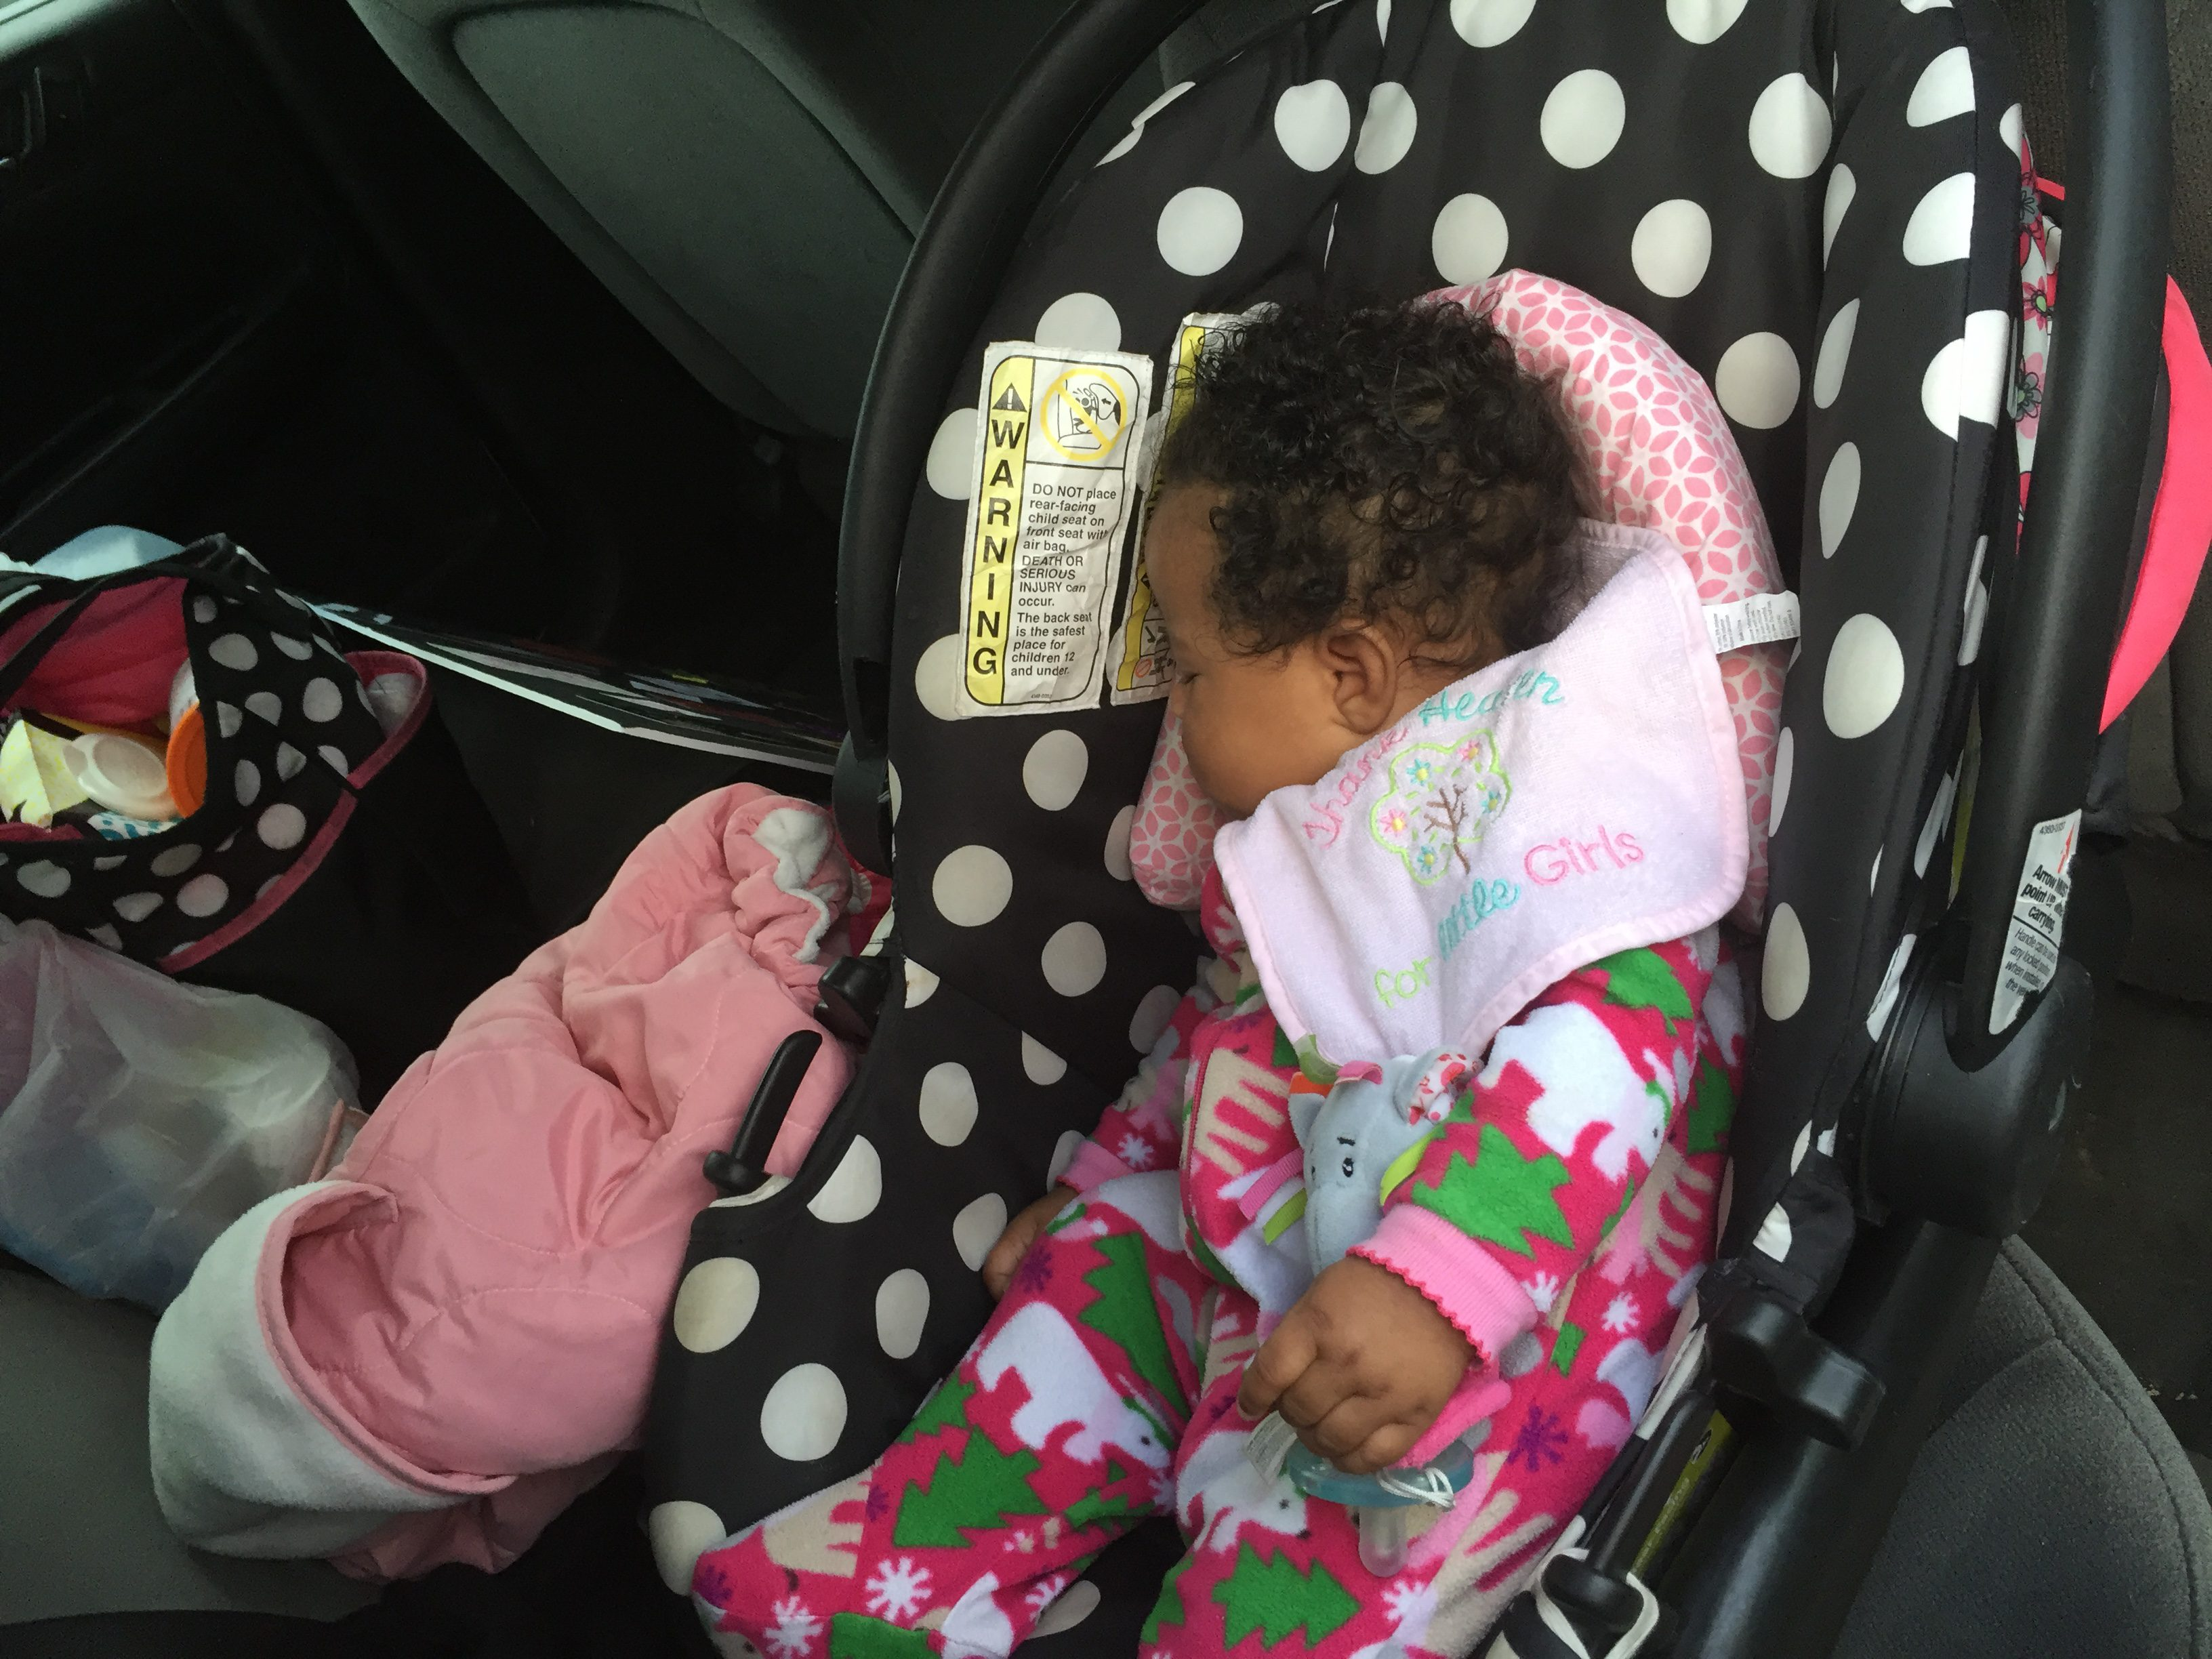 Police say a stranger tried to choke this 4-month-old at Walmart Wednesday morning.